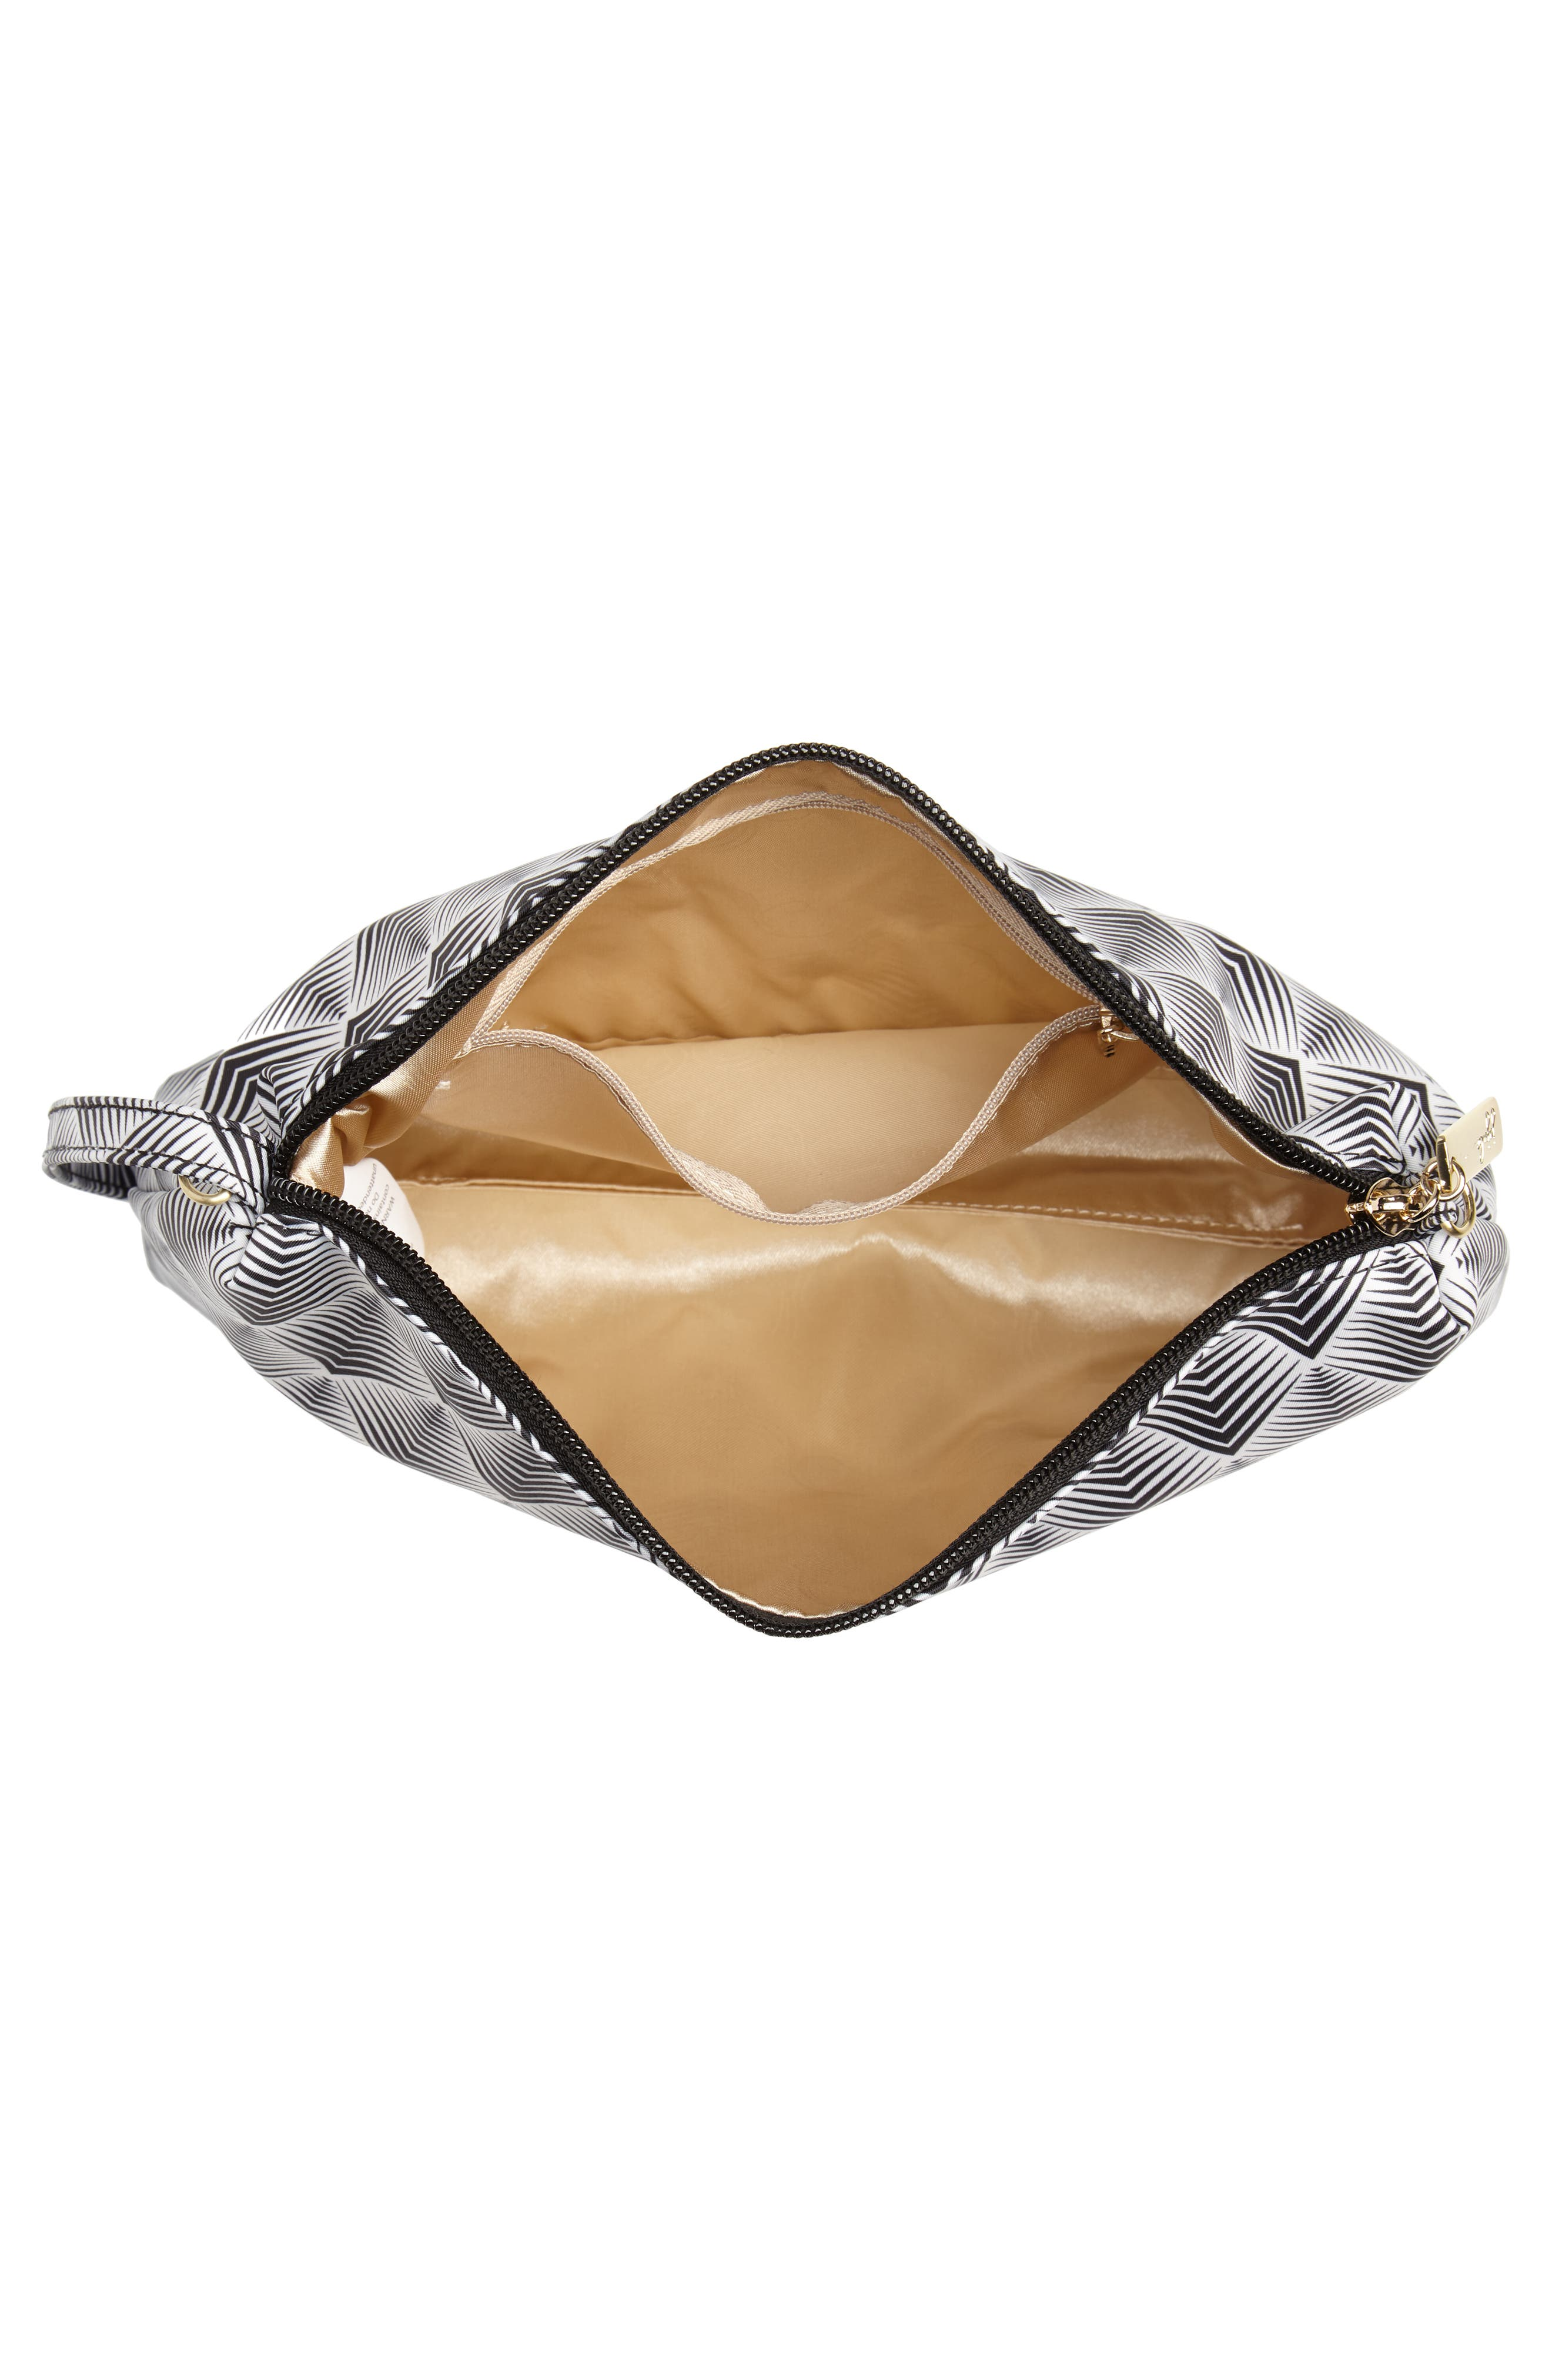 'Legacy Be Quick' Wristlet Pouch,                             Alternate thumbnail 2, color,                             The Cleopatra